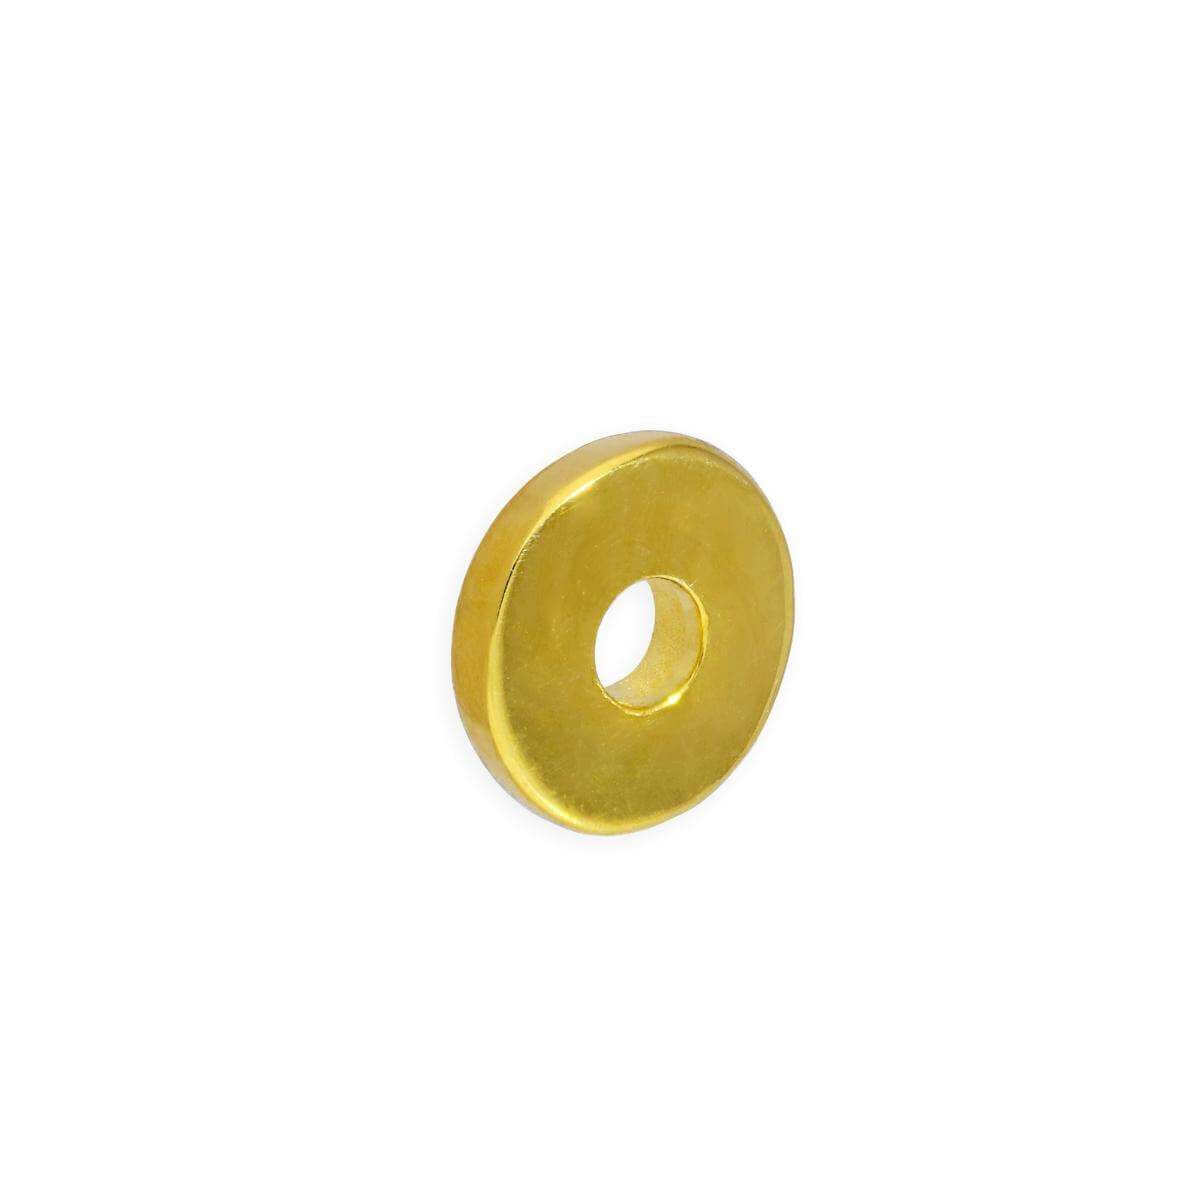 Gold Plated Sterling Silver 1mm Plain Polished Round Flat Disc Ring Bead